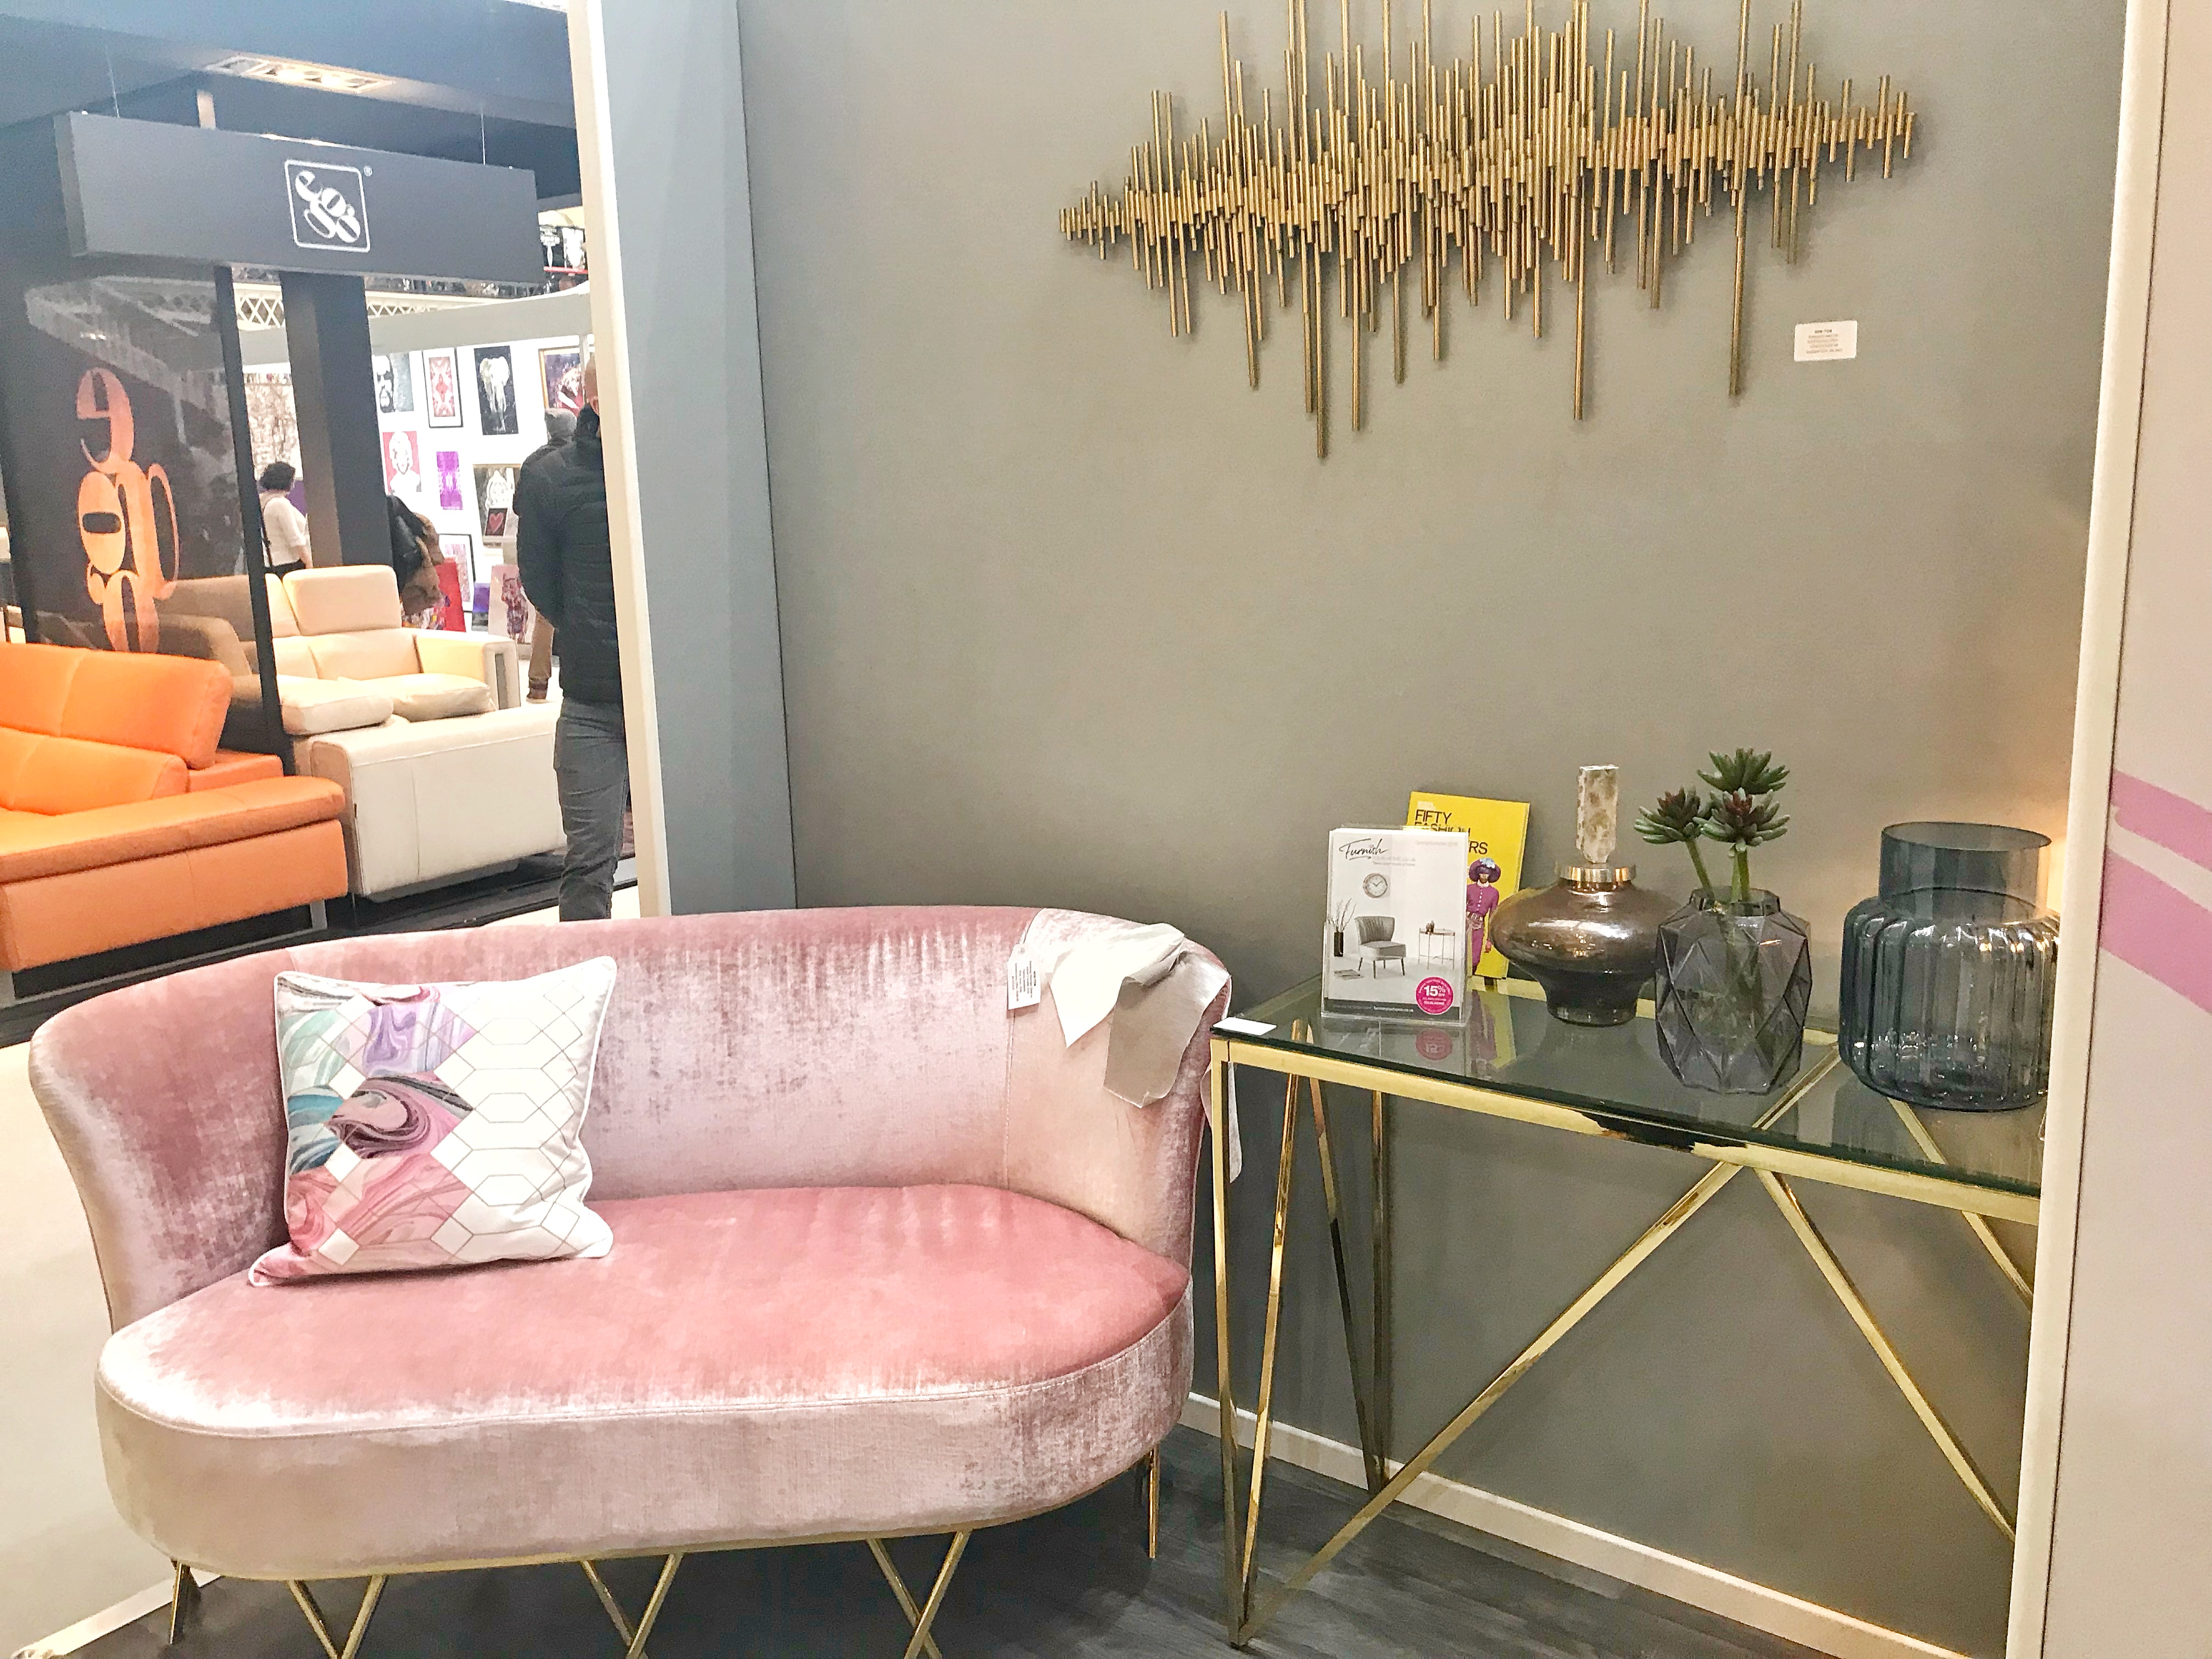 The Designs Are Very Sleek And Modern, My Favourite Piece Was This Pink  Sofa, I Absolutely Love The Style And Colour! I Also Really Liked This Ruby  Coloured ...